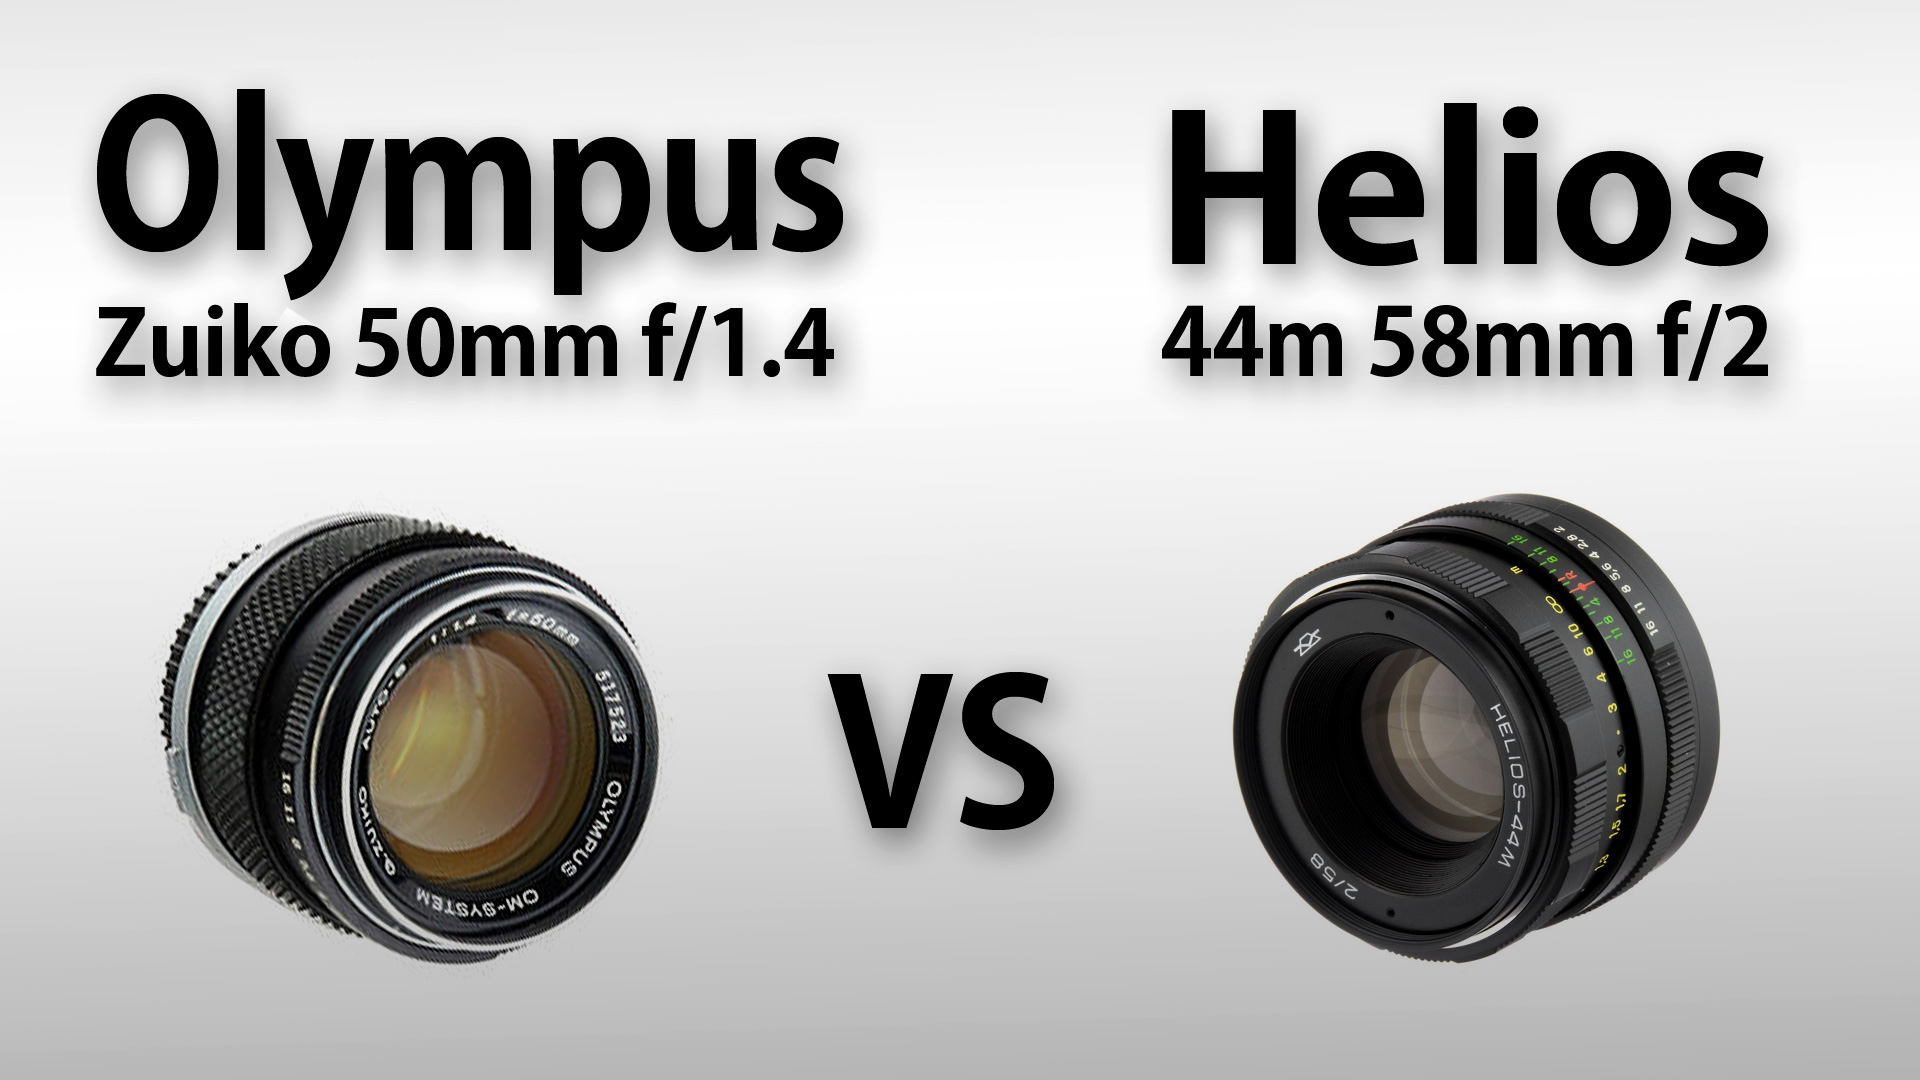 Olympus Zuiko 50mm f/1.4 vs Helios 44M 58mm f/2